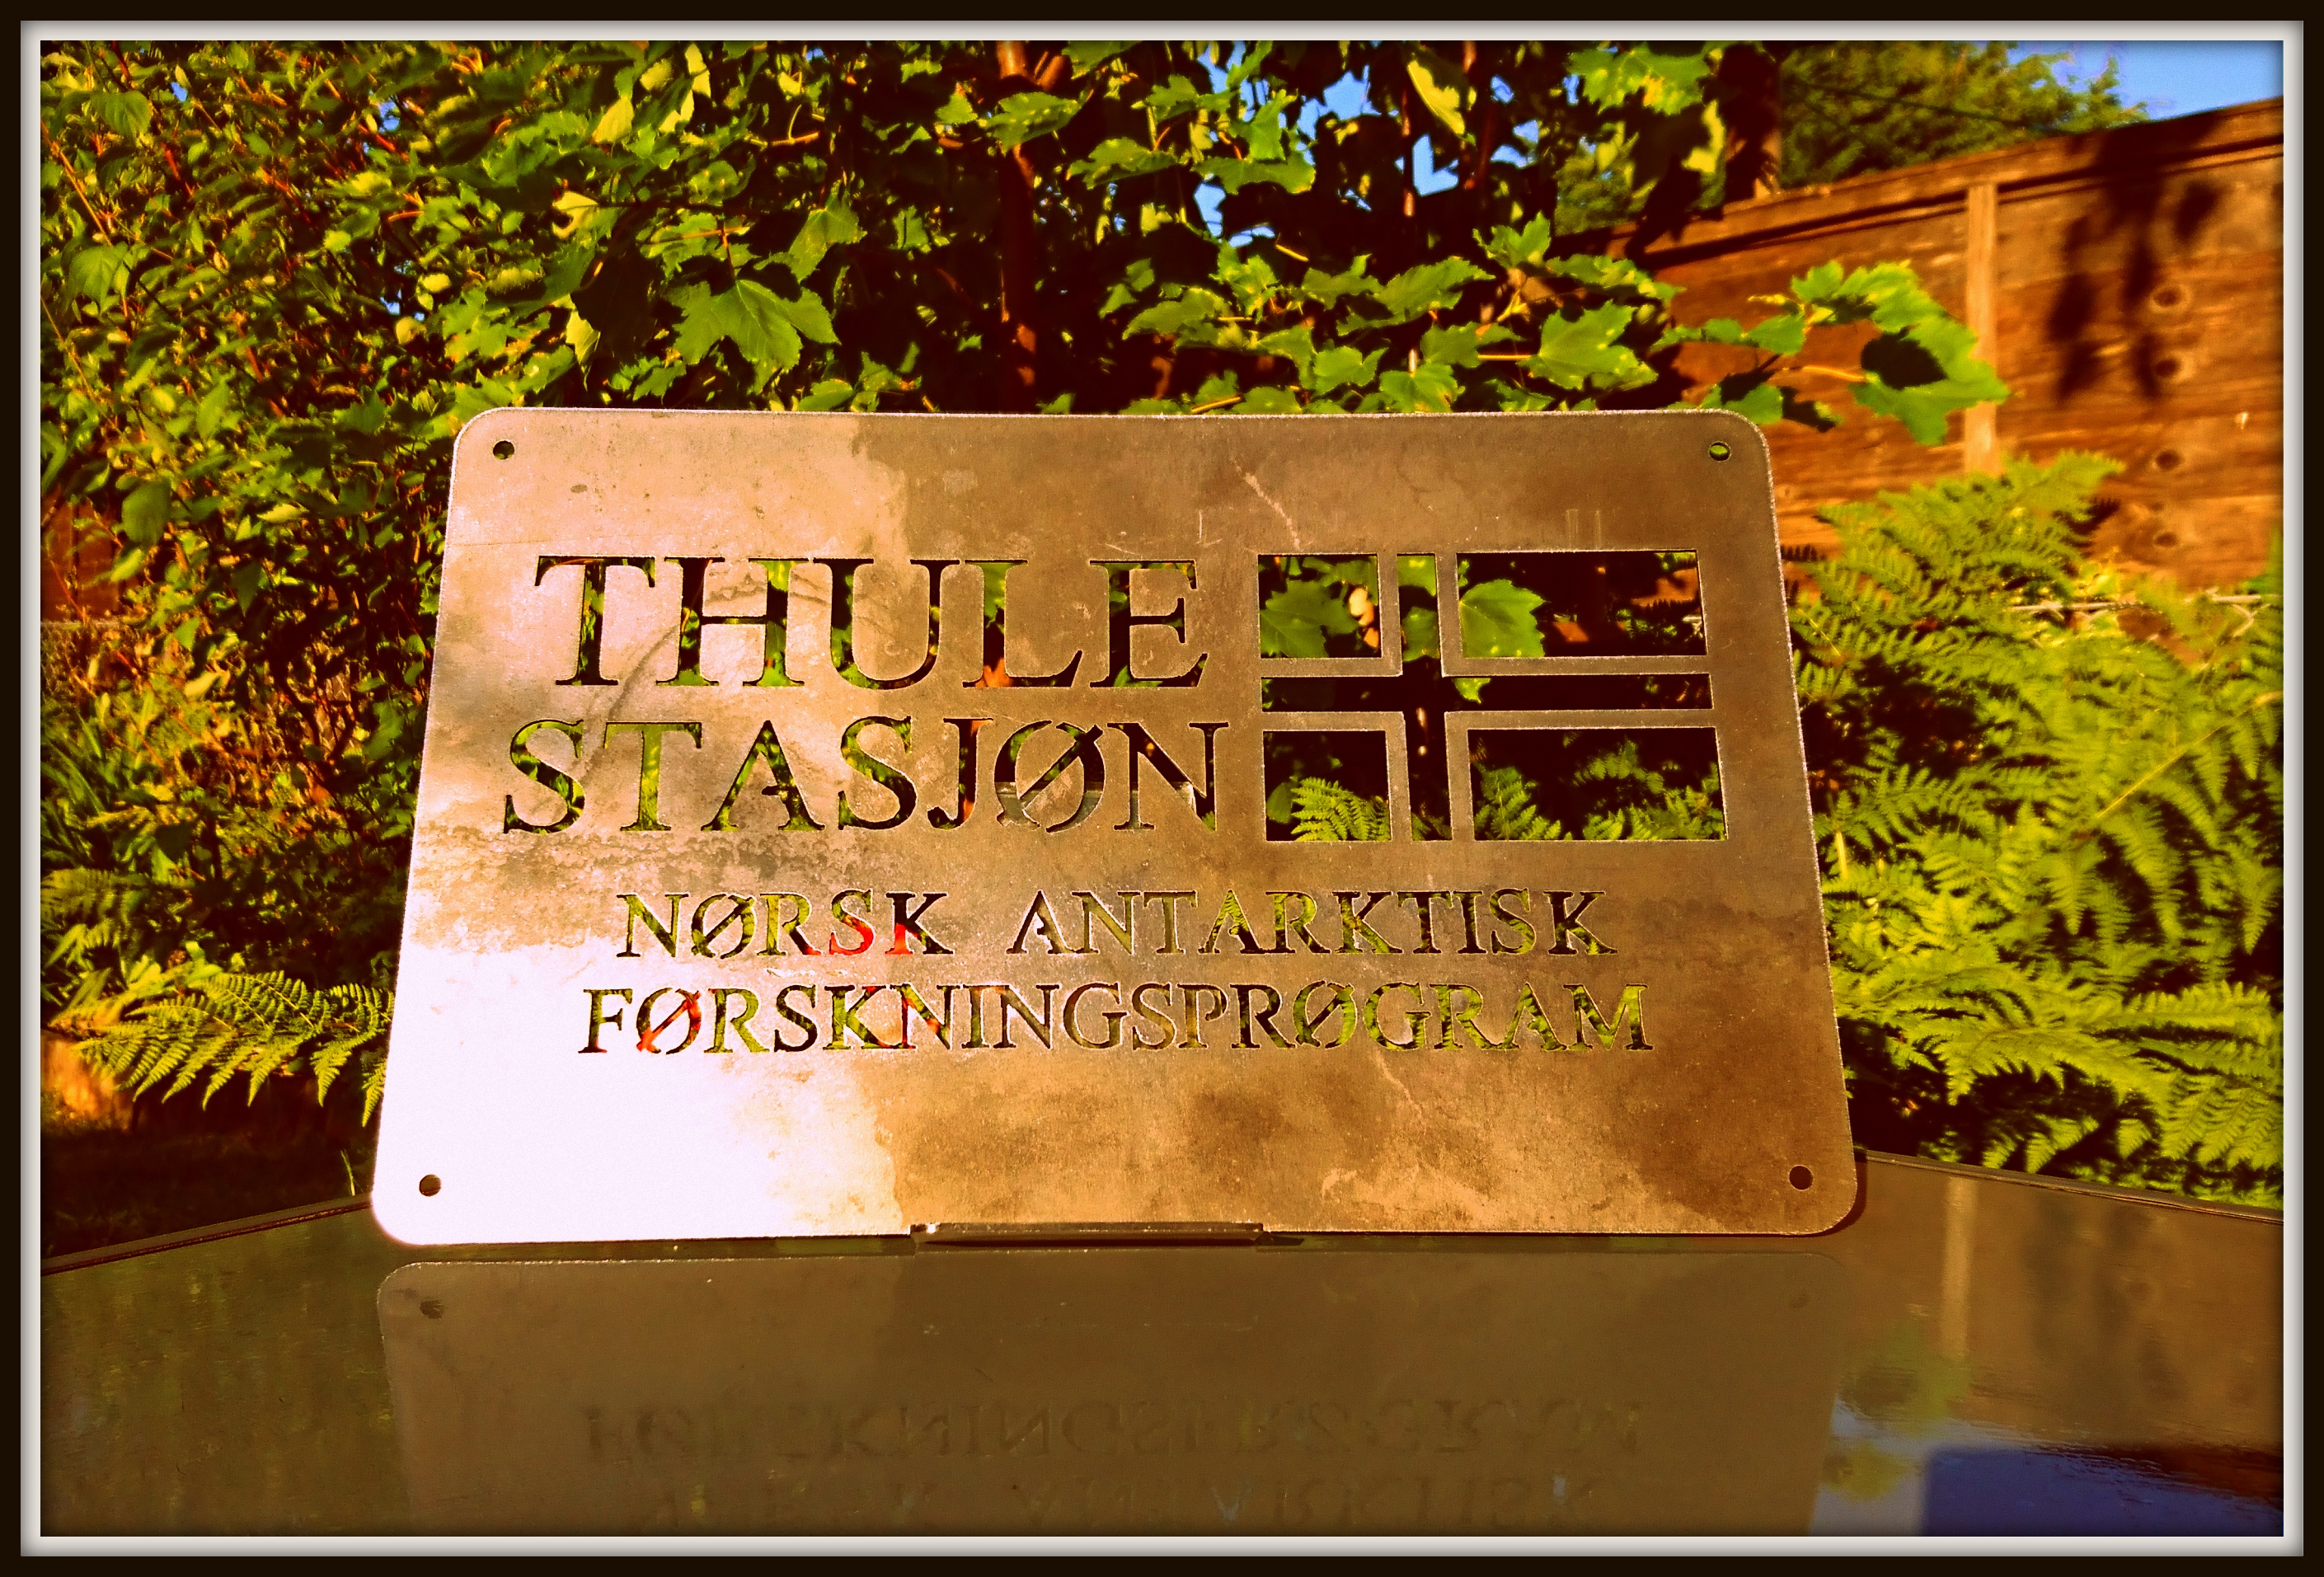 Thule Station. Rusty